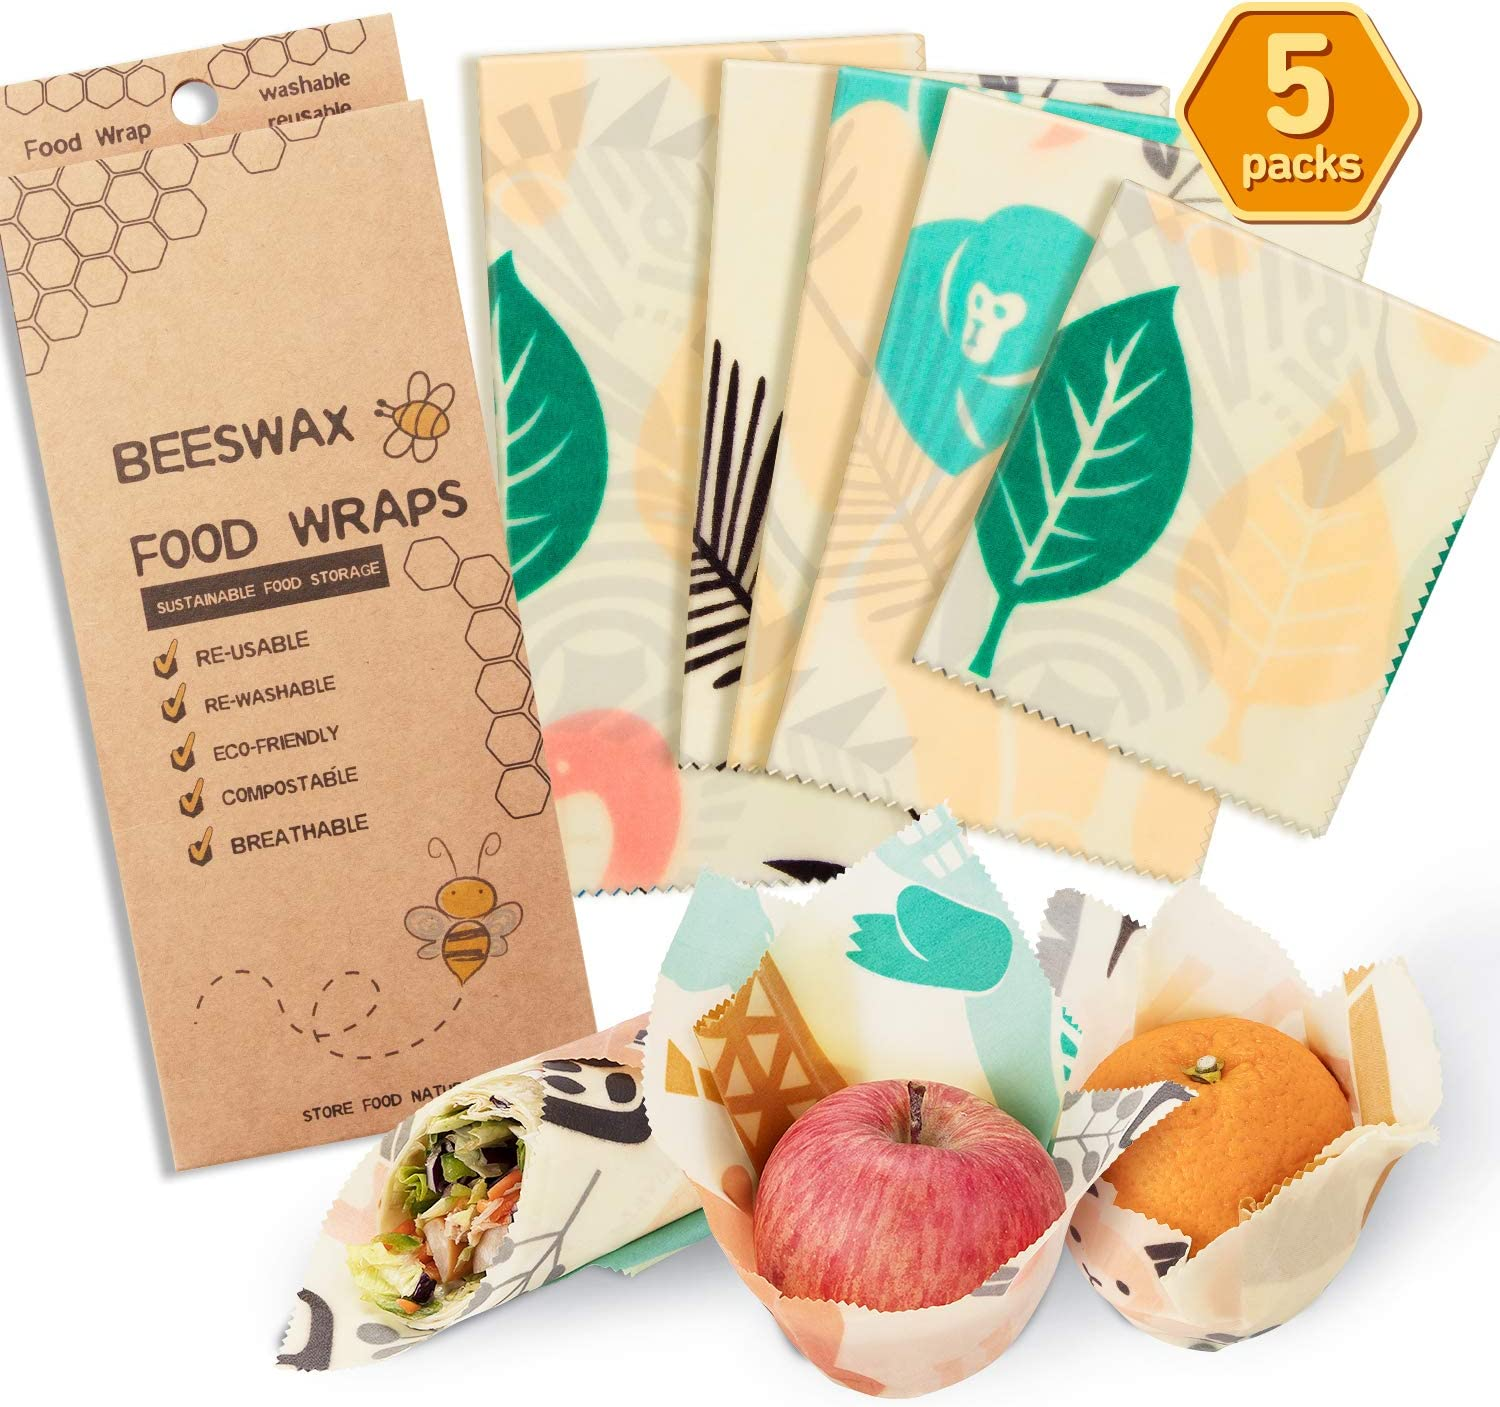 Beeswax Food Wrap Reusable Assorted 5 Packs Food Storage Wrappers Cling Sandwich Eco Friendly Reusable Food Wraps - 1 Small, 3 Medium, 1 Large- Say Goodbye to Plastic (Animal)